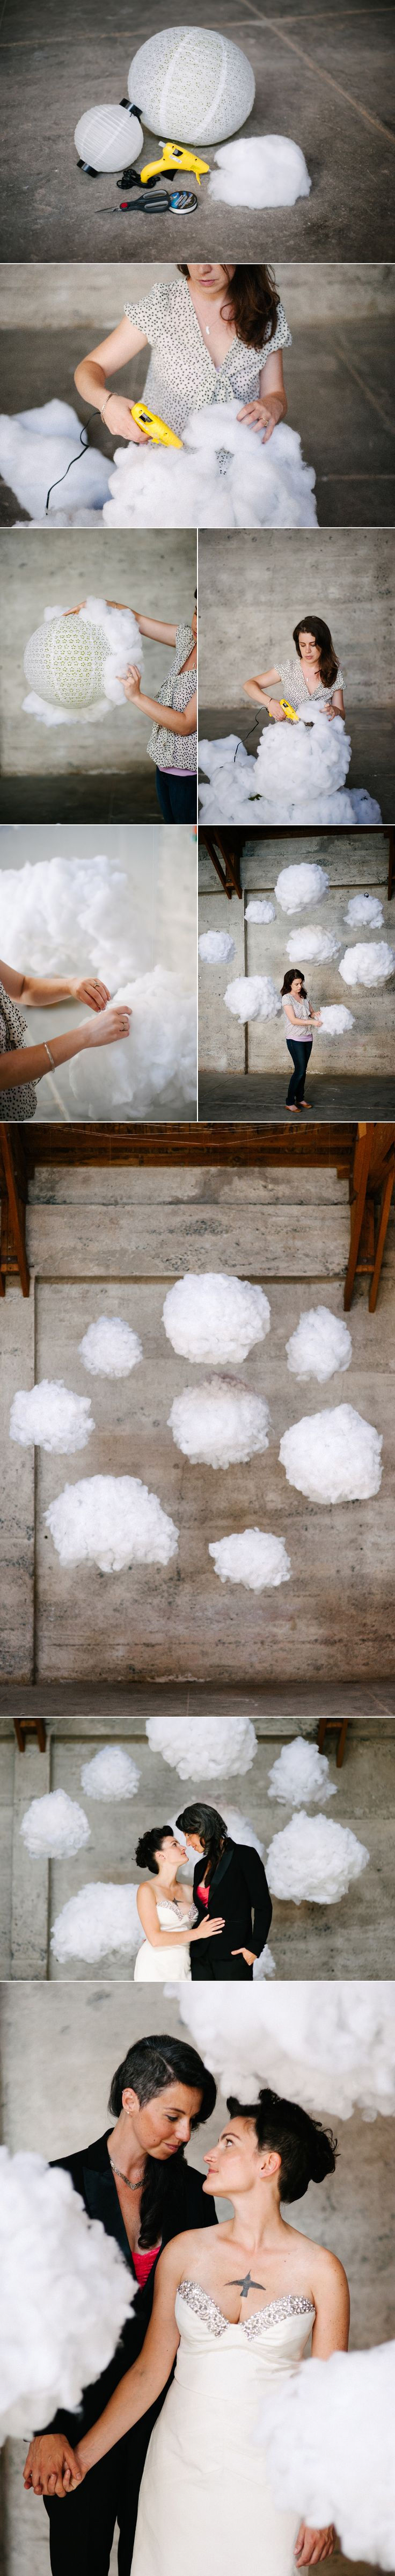 How To: Surreal DIY Cloud Backdrop (supposedly for weddings but probably awesome in my house) [ Wealthwood.com ] #Christmas #personalized #gift